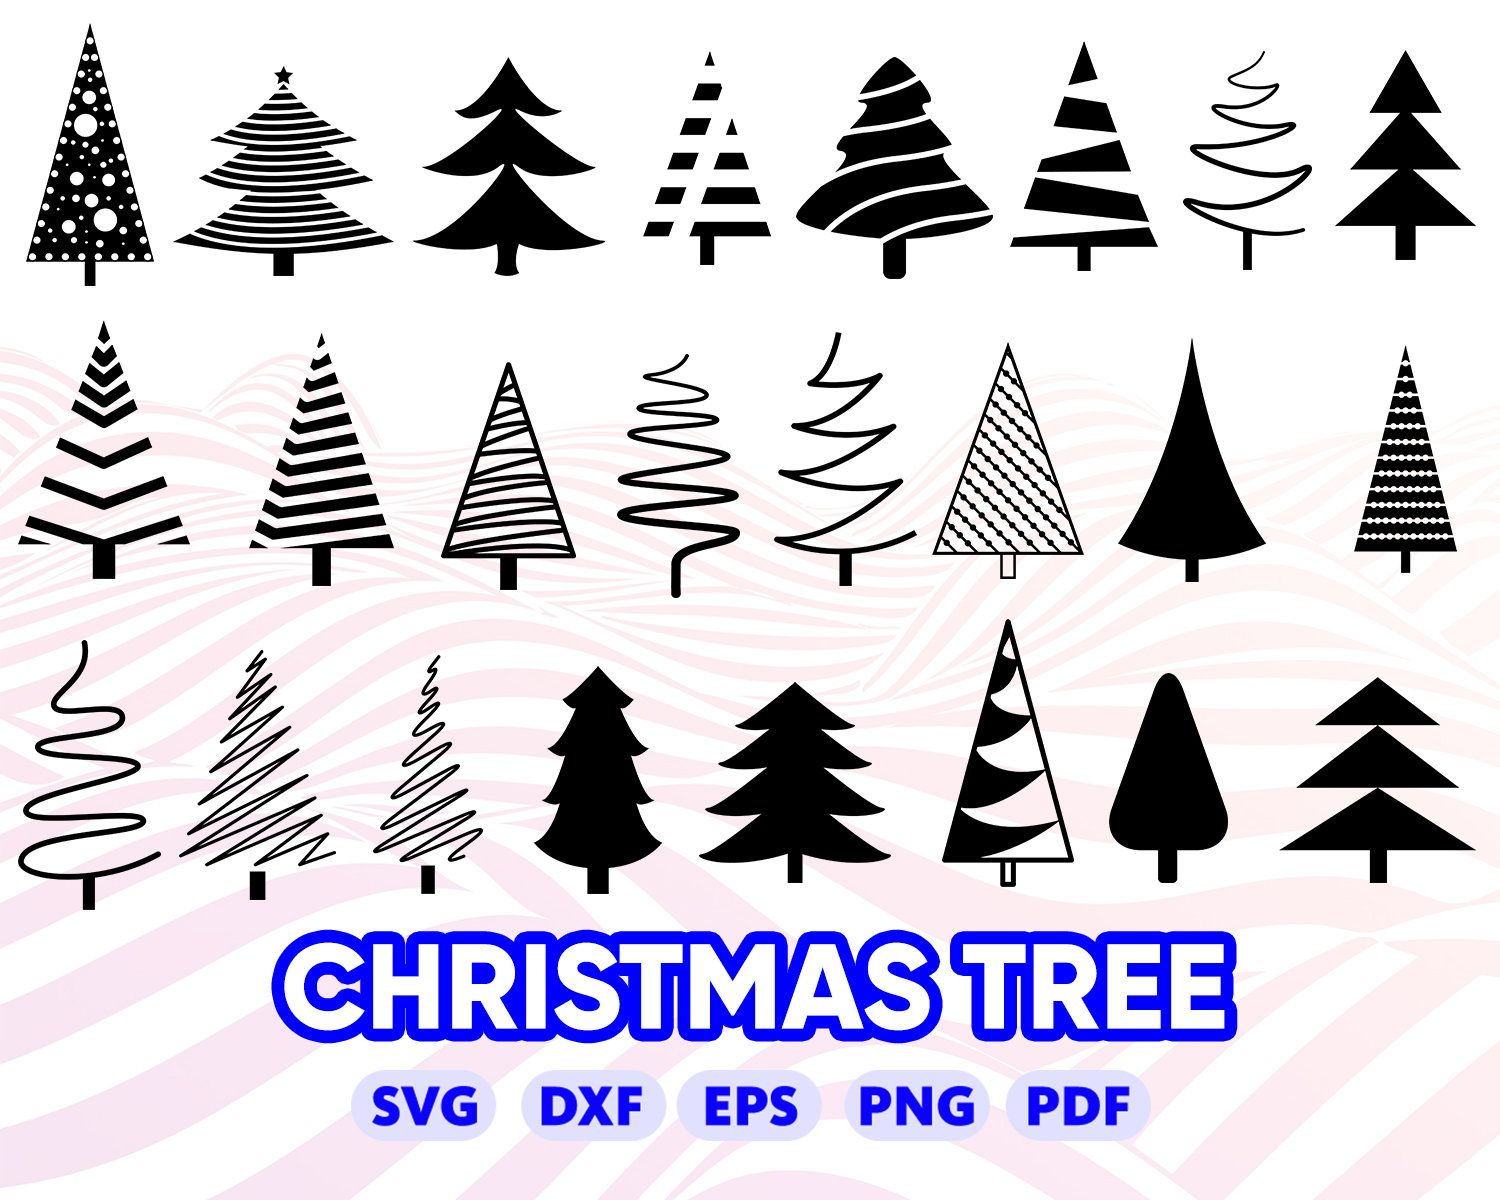 Christmas Tree Svg Christmas Tree Clipart Christmas Tree Silhouette Christmas Tree Vector Tree Clipart Dxf Ornament Svg Pine Tree Svg Christmas Tree Clipart Christmas Tree Silhouette Tree Svg